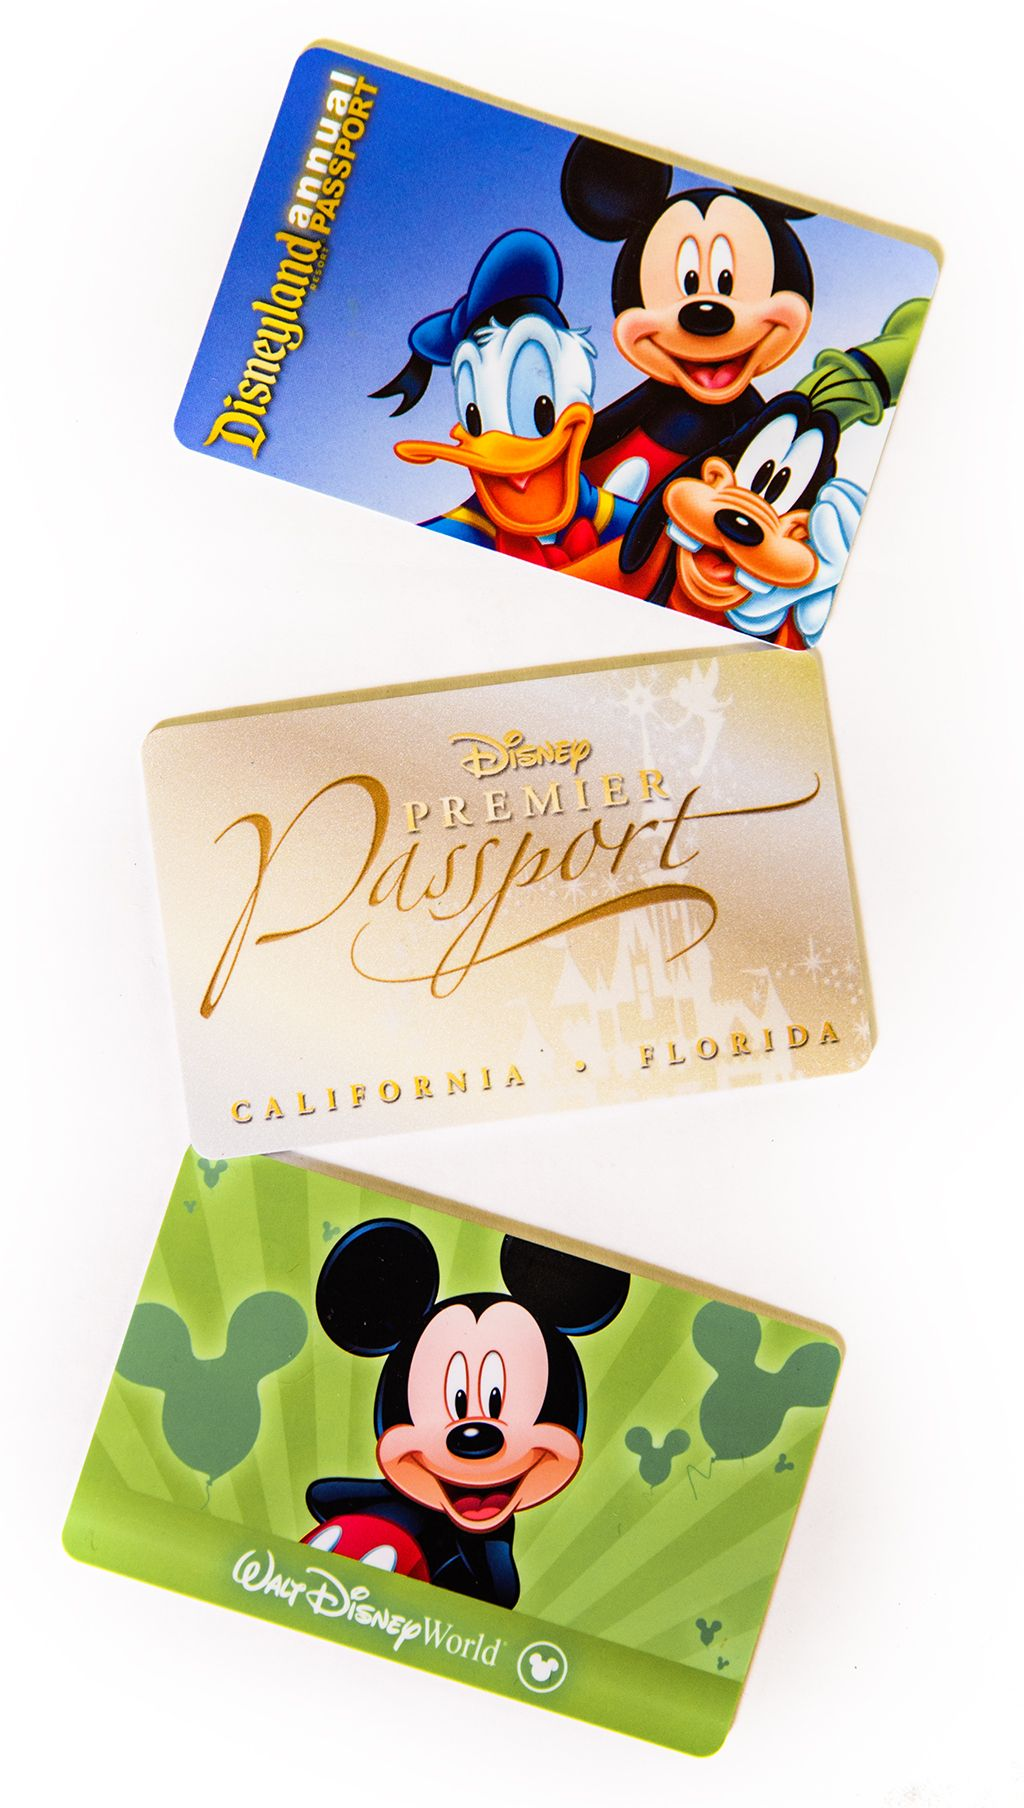 bnightf.ml is the official online seller of Discount Disney World Tickets for the Walt Disney World Resort in Orlando Florida.